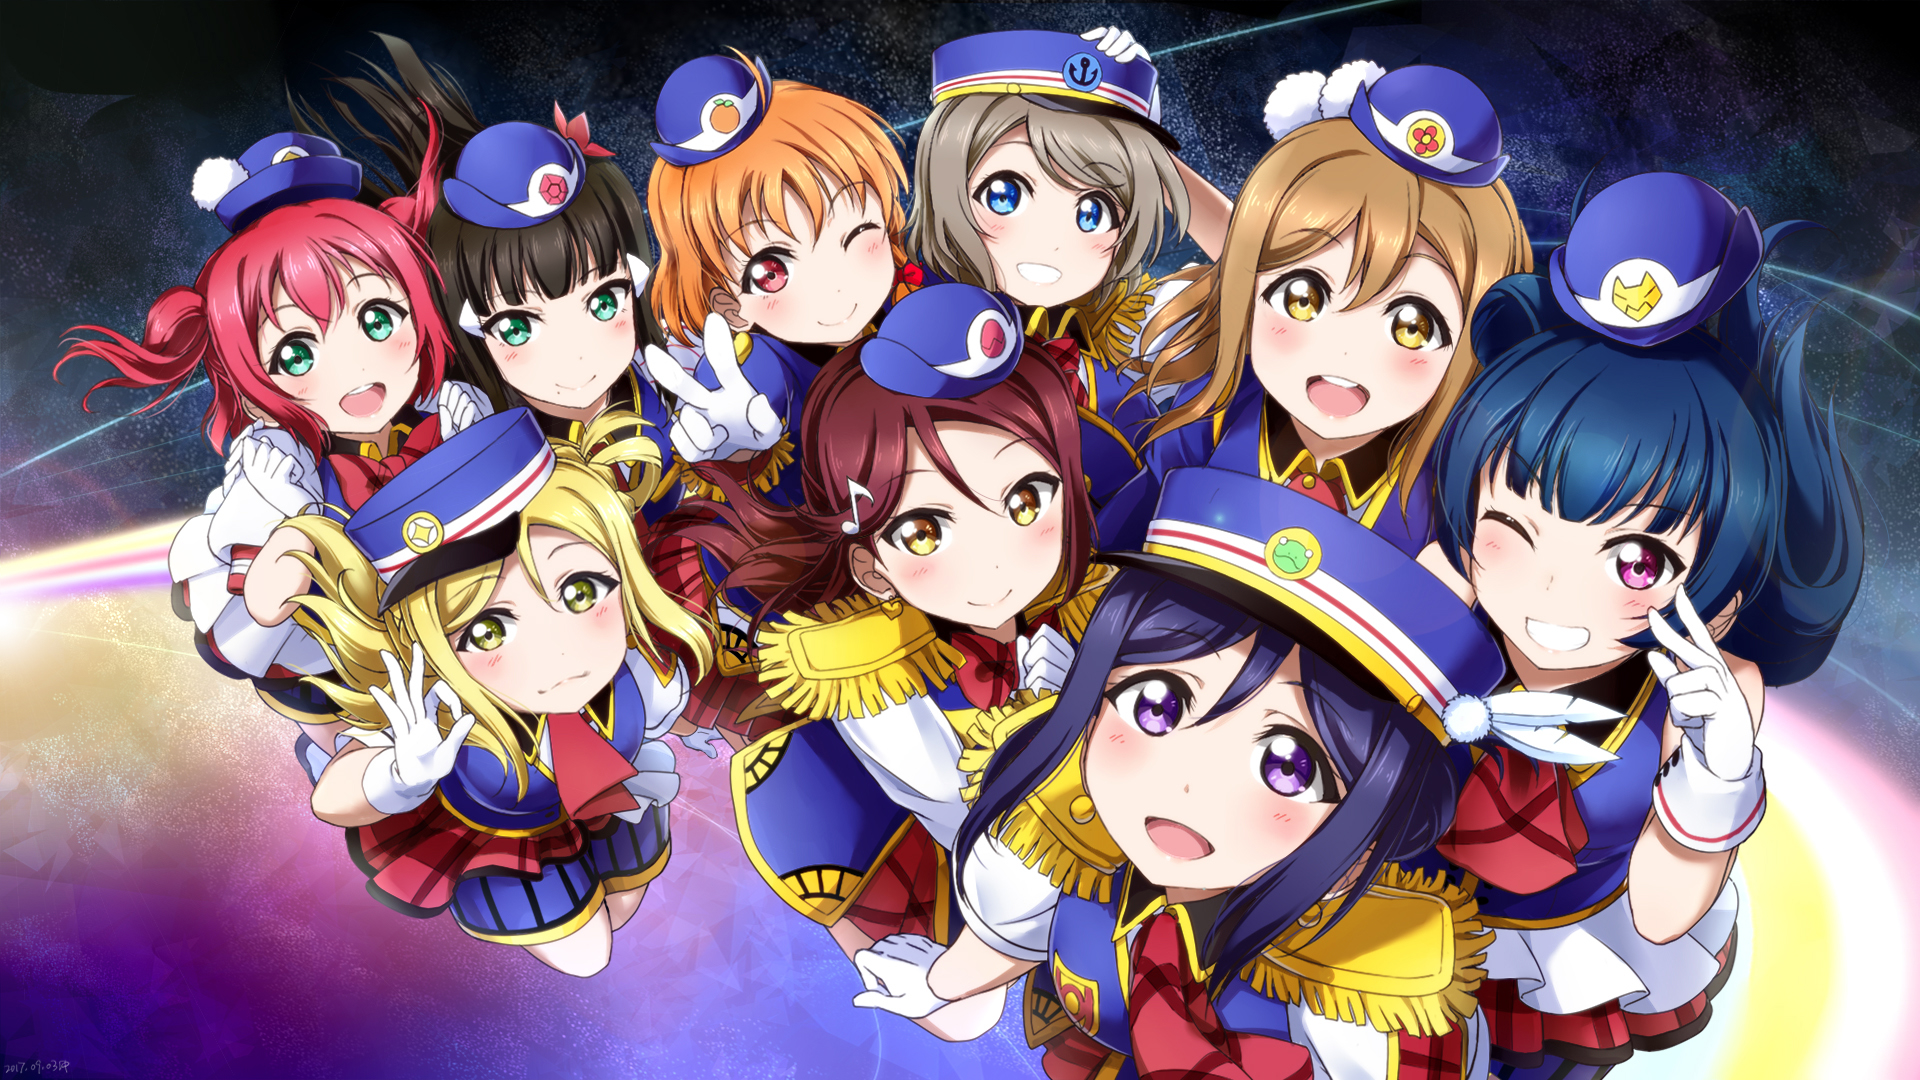 Love Live Wallpaper Hd For Pc : Love Live! Sunshine!! Full HD Wallpaper and Achtergrond ...